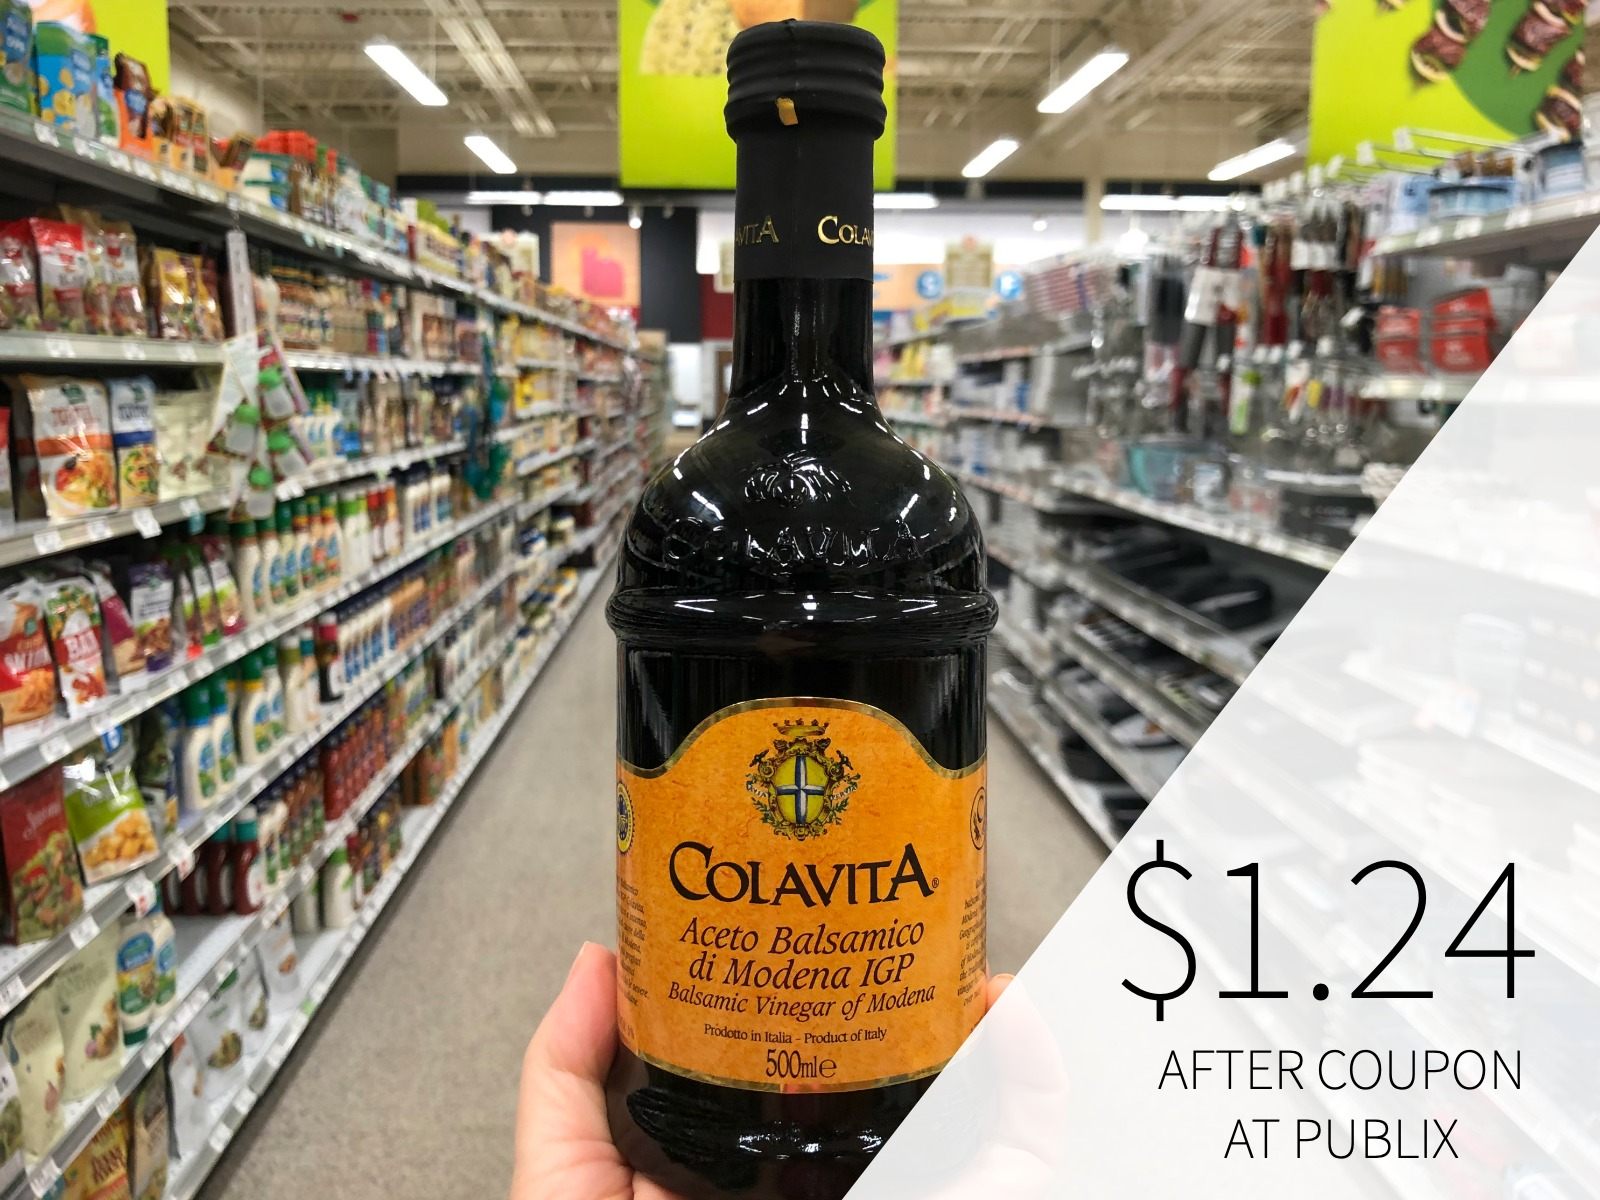 Colavita Balsamic Vinegar Only $1.24 At Publix (Save Over $4) on I Heart Publix